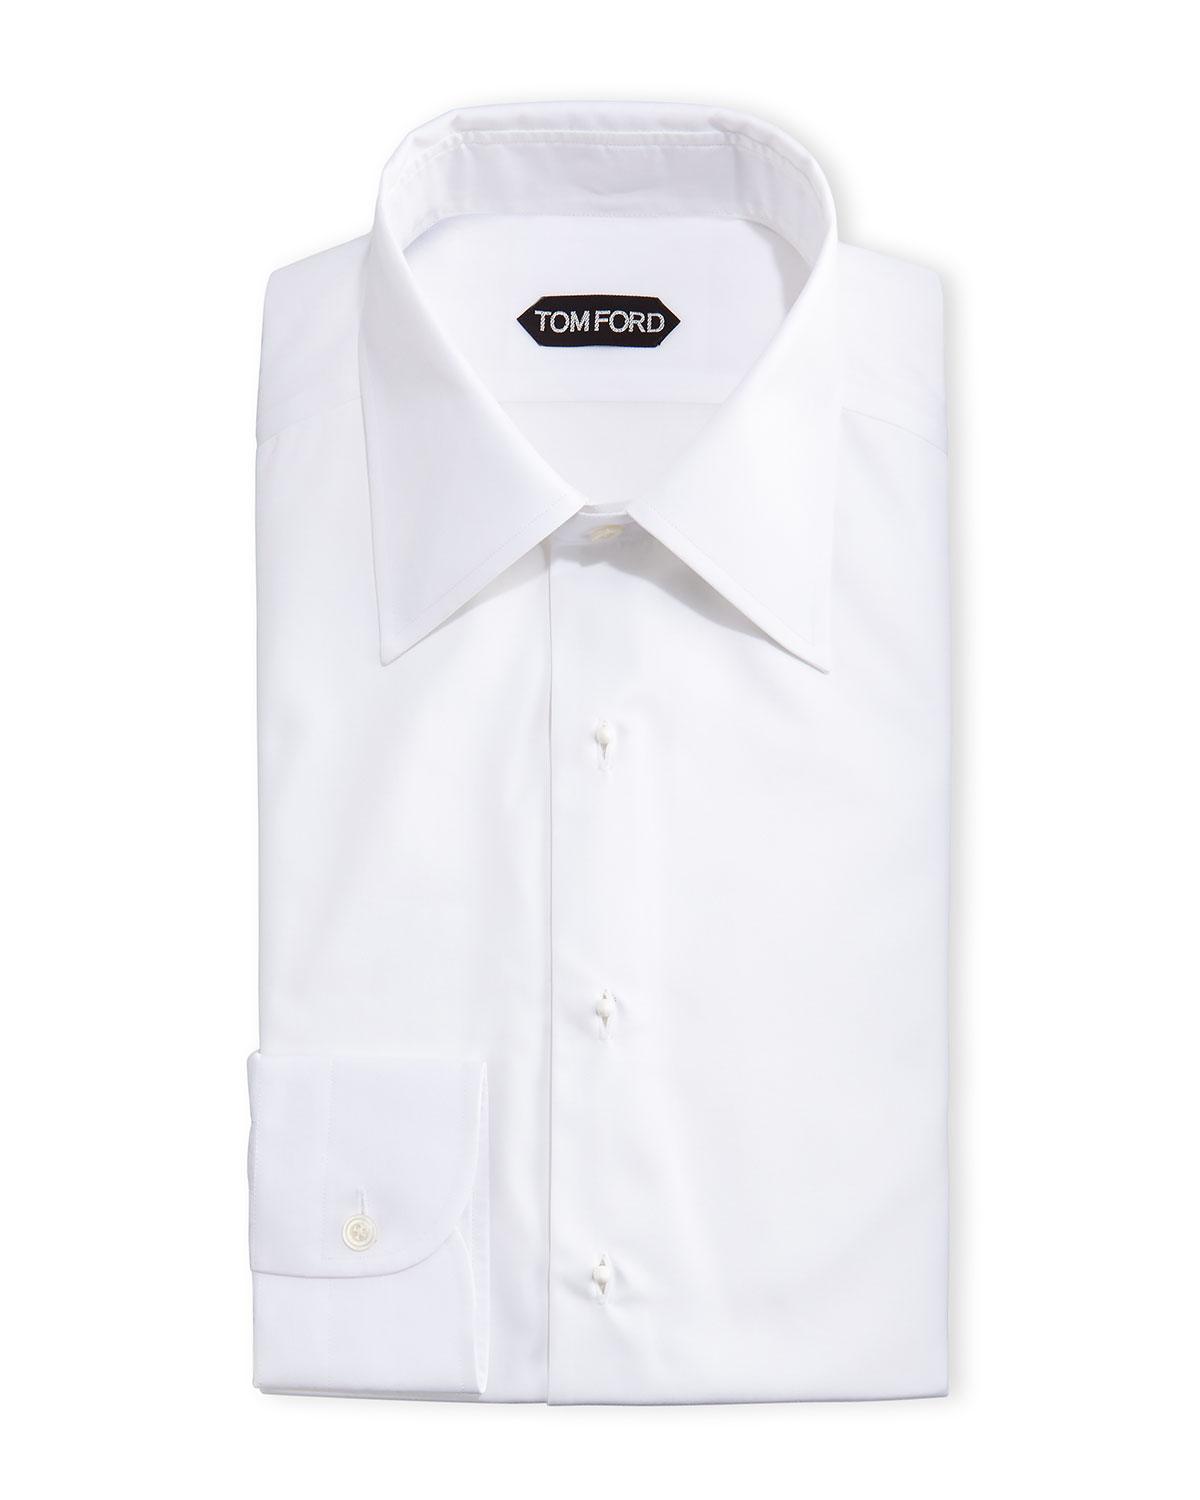 White French Cuff Dress Shirt With Collar Bar Chad Crowley Productions